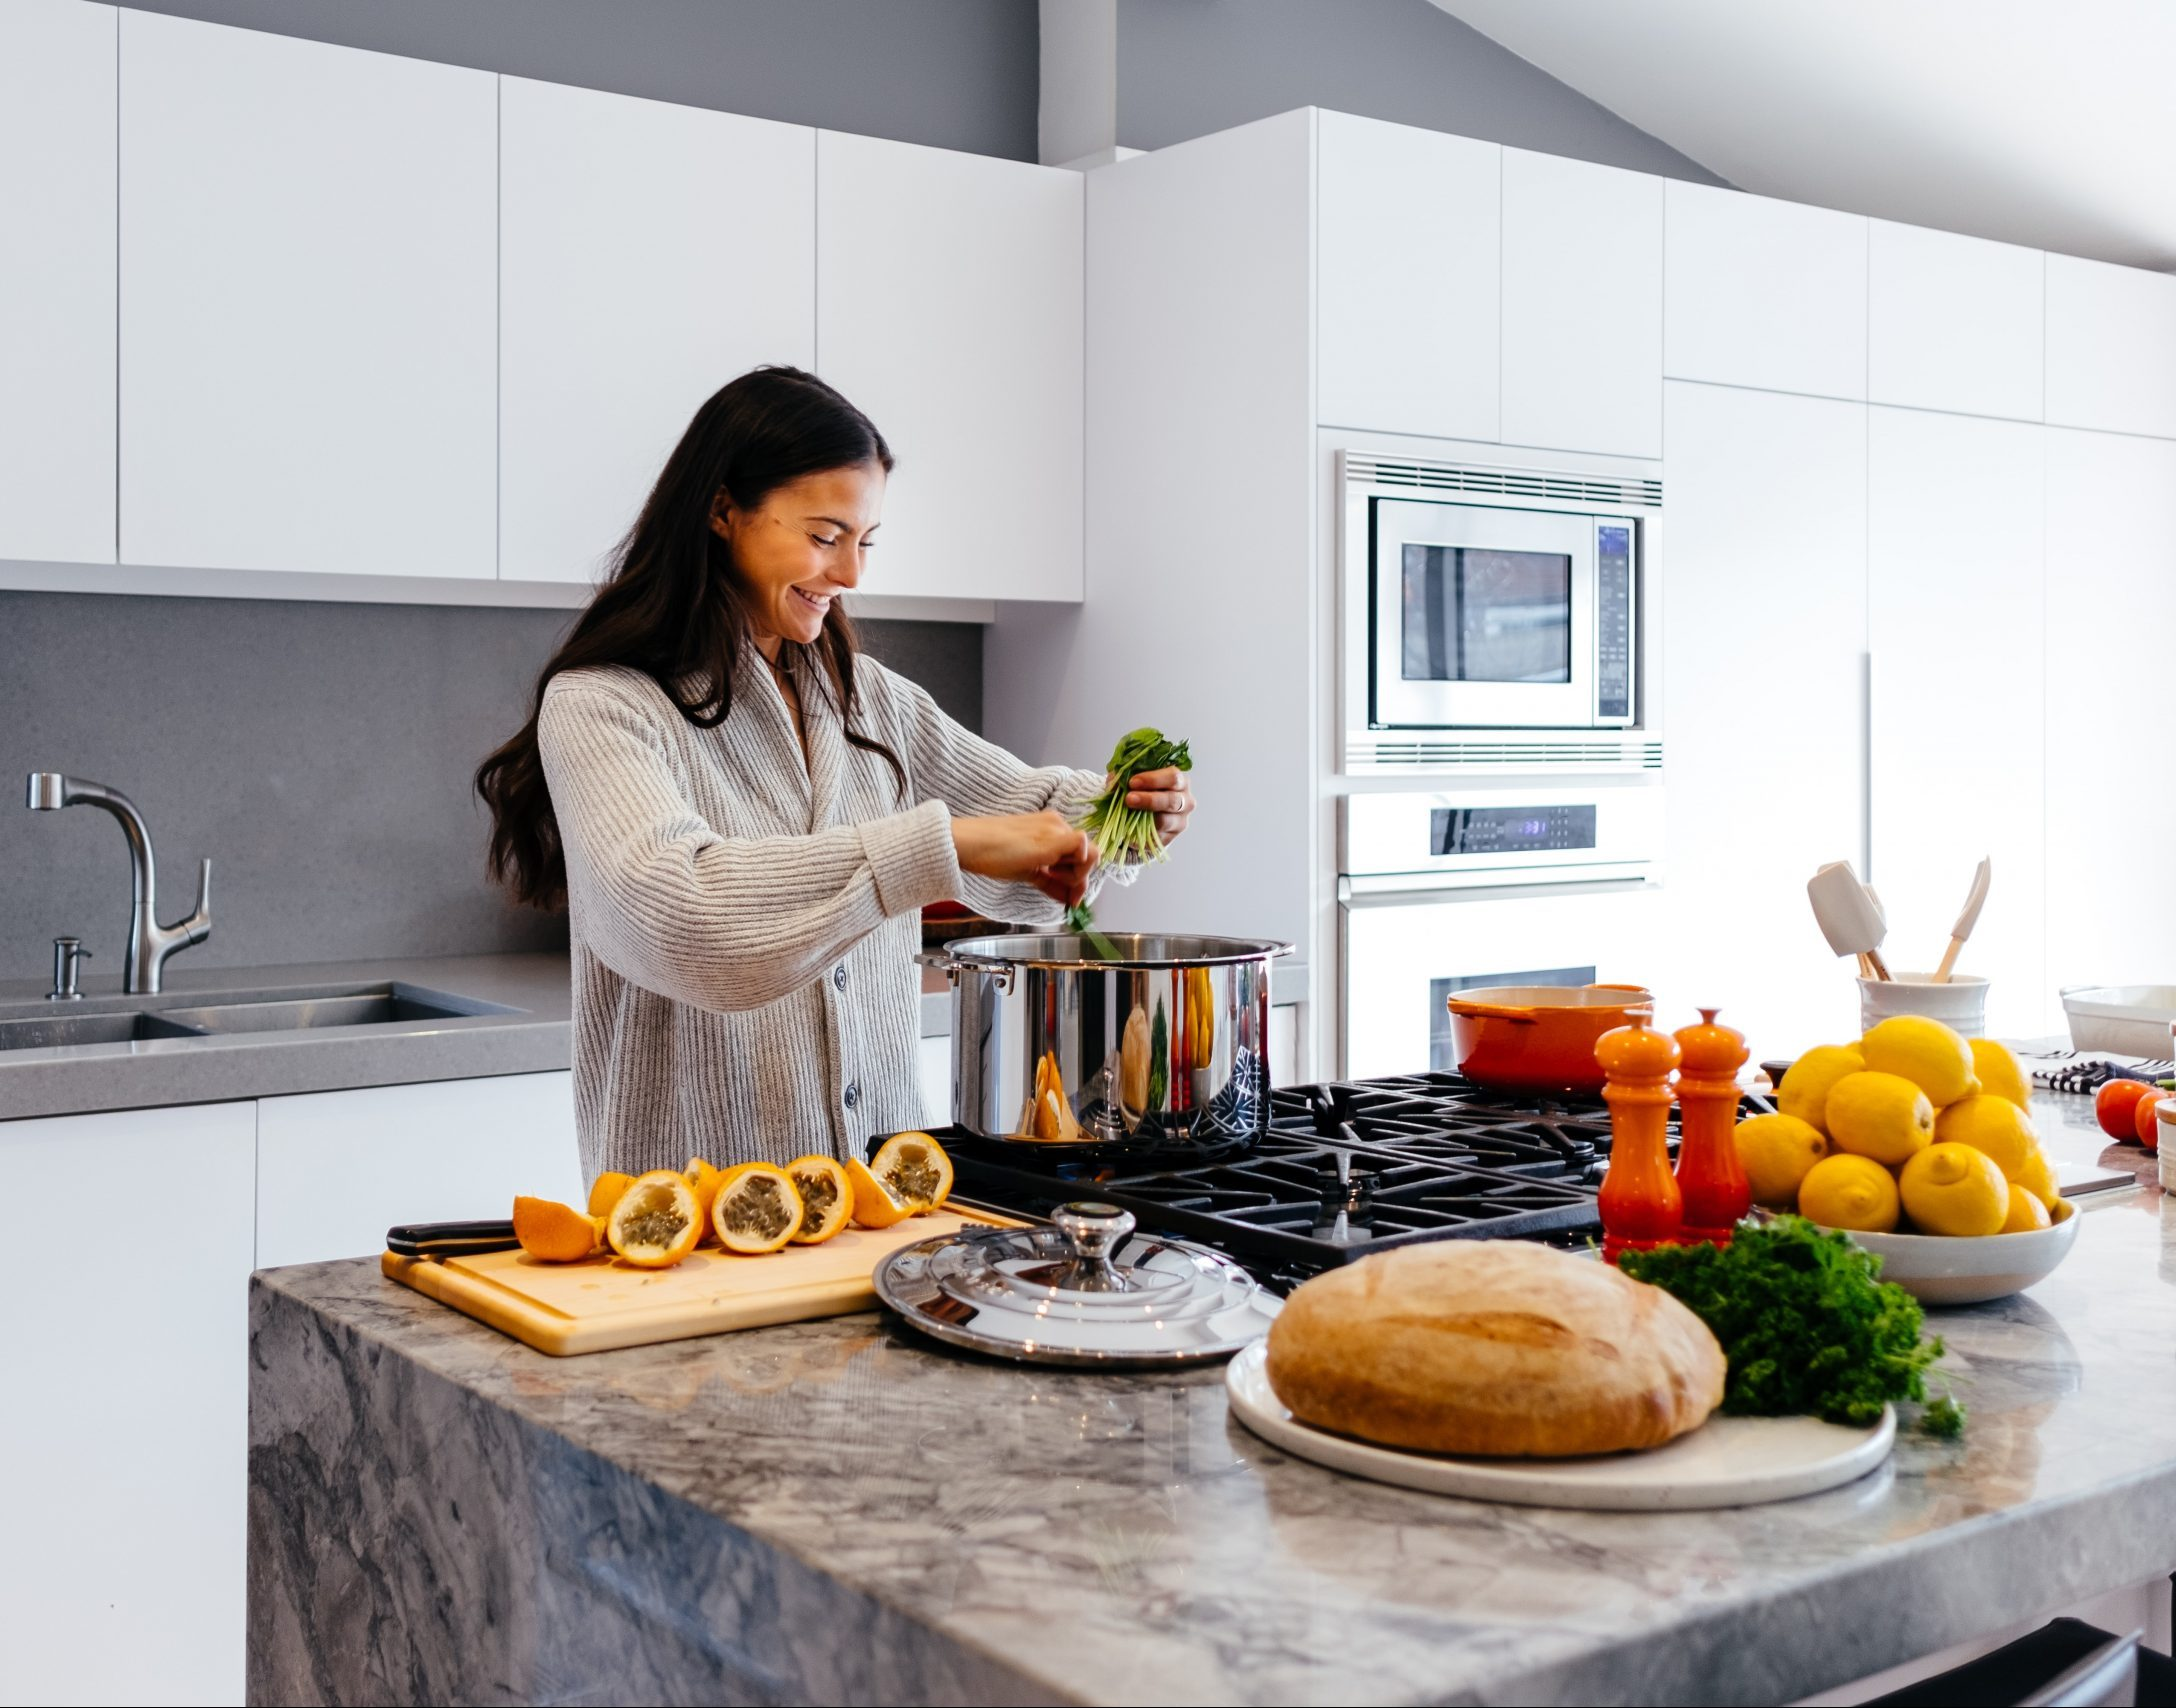 A Healthy Home: A Health & Lifestyle Workshop. July 18